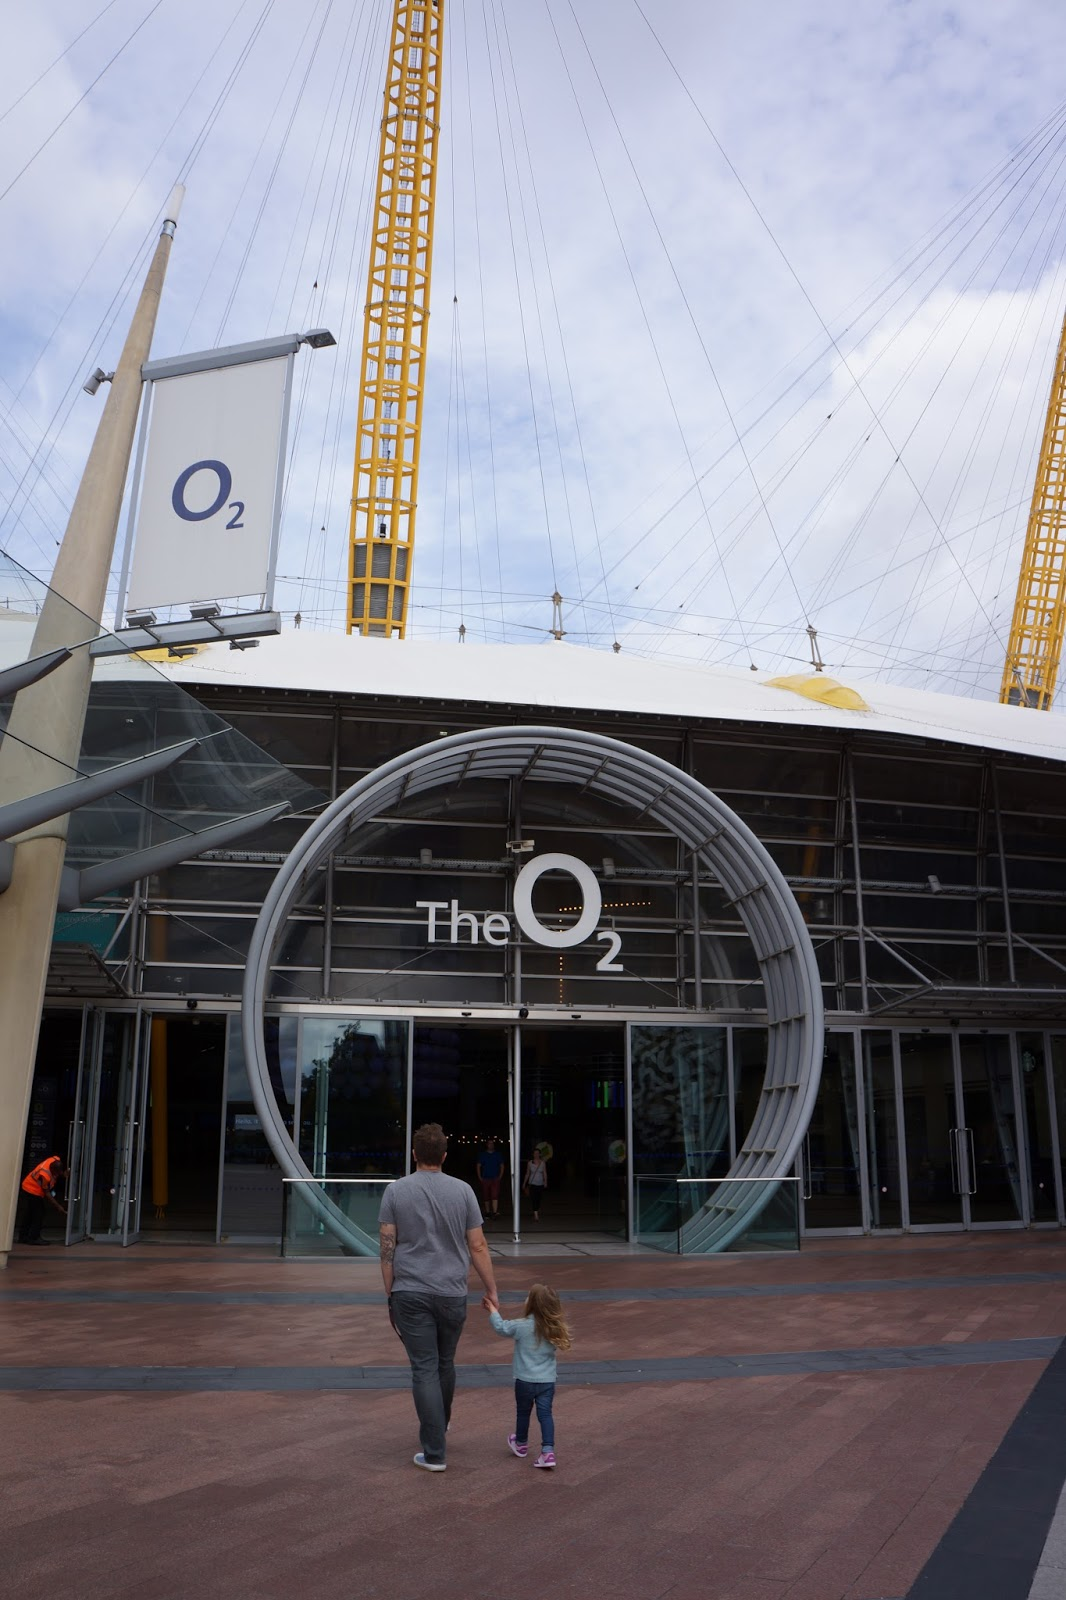 father and child walking toward the o2 entrance